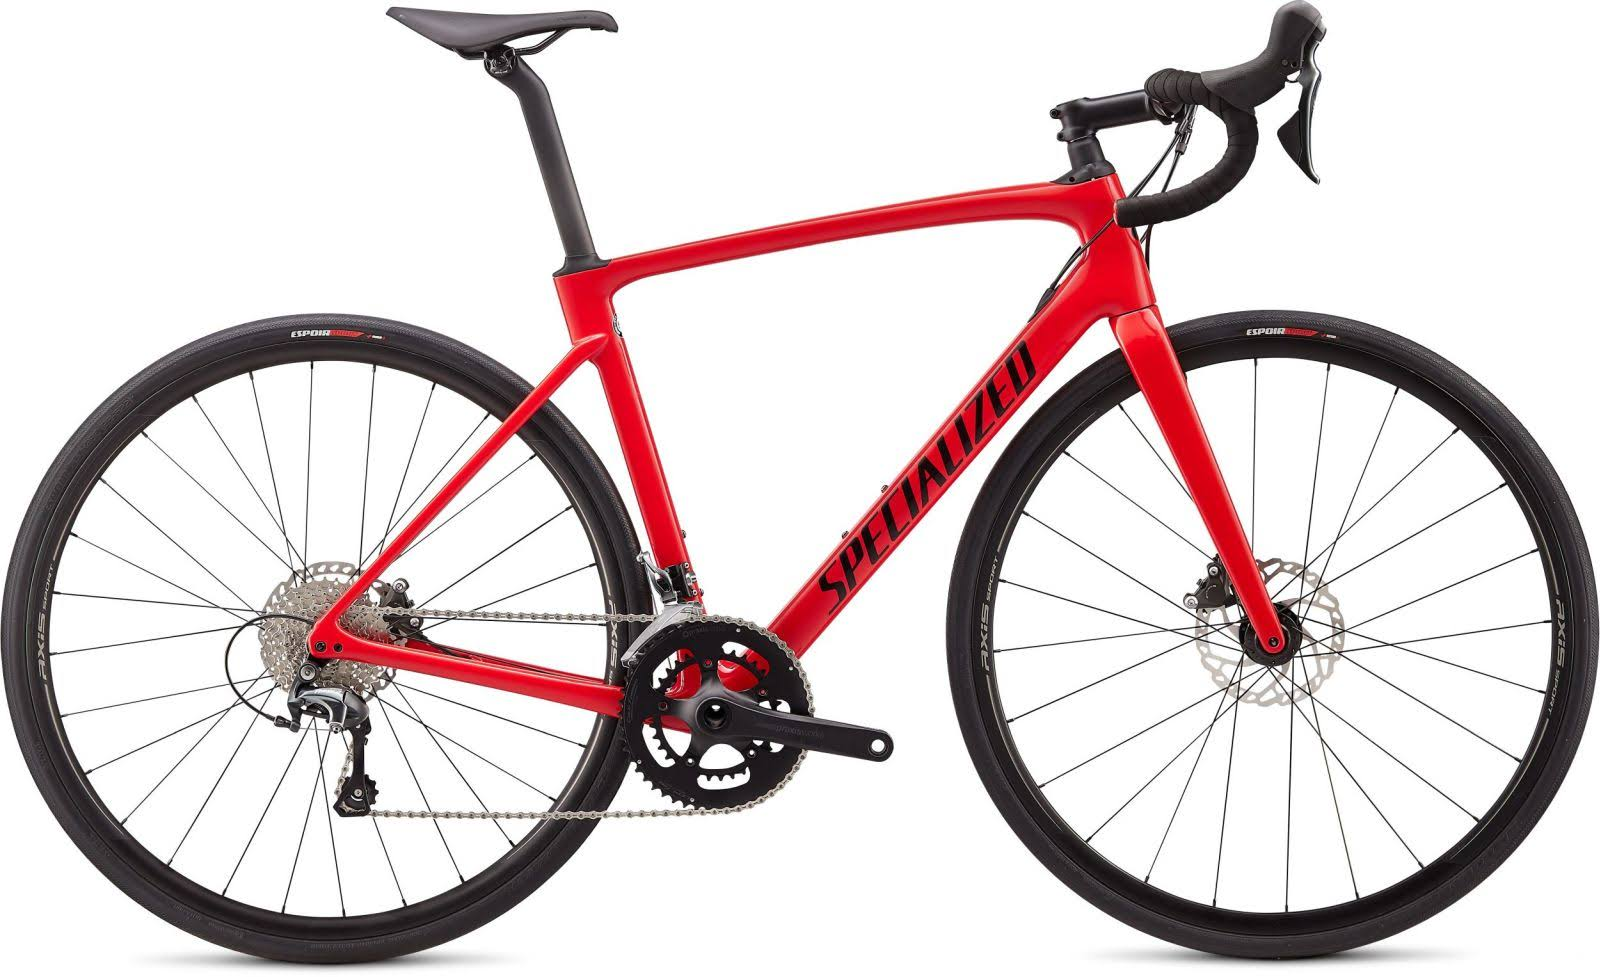 Specialized Roubaix Bicycle - Gloss Flo Red/Blue Ghost Pearl/Tarmac Black, 58cm